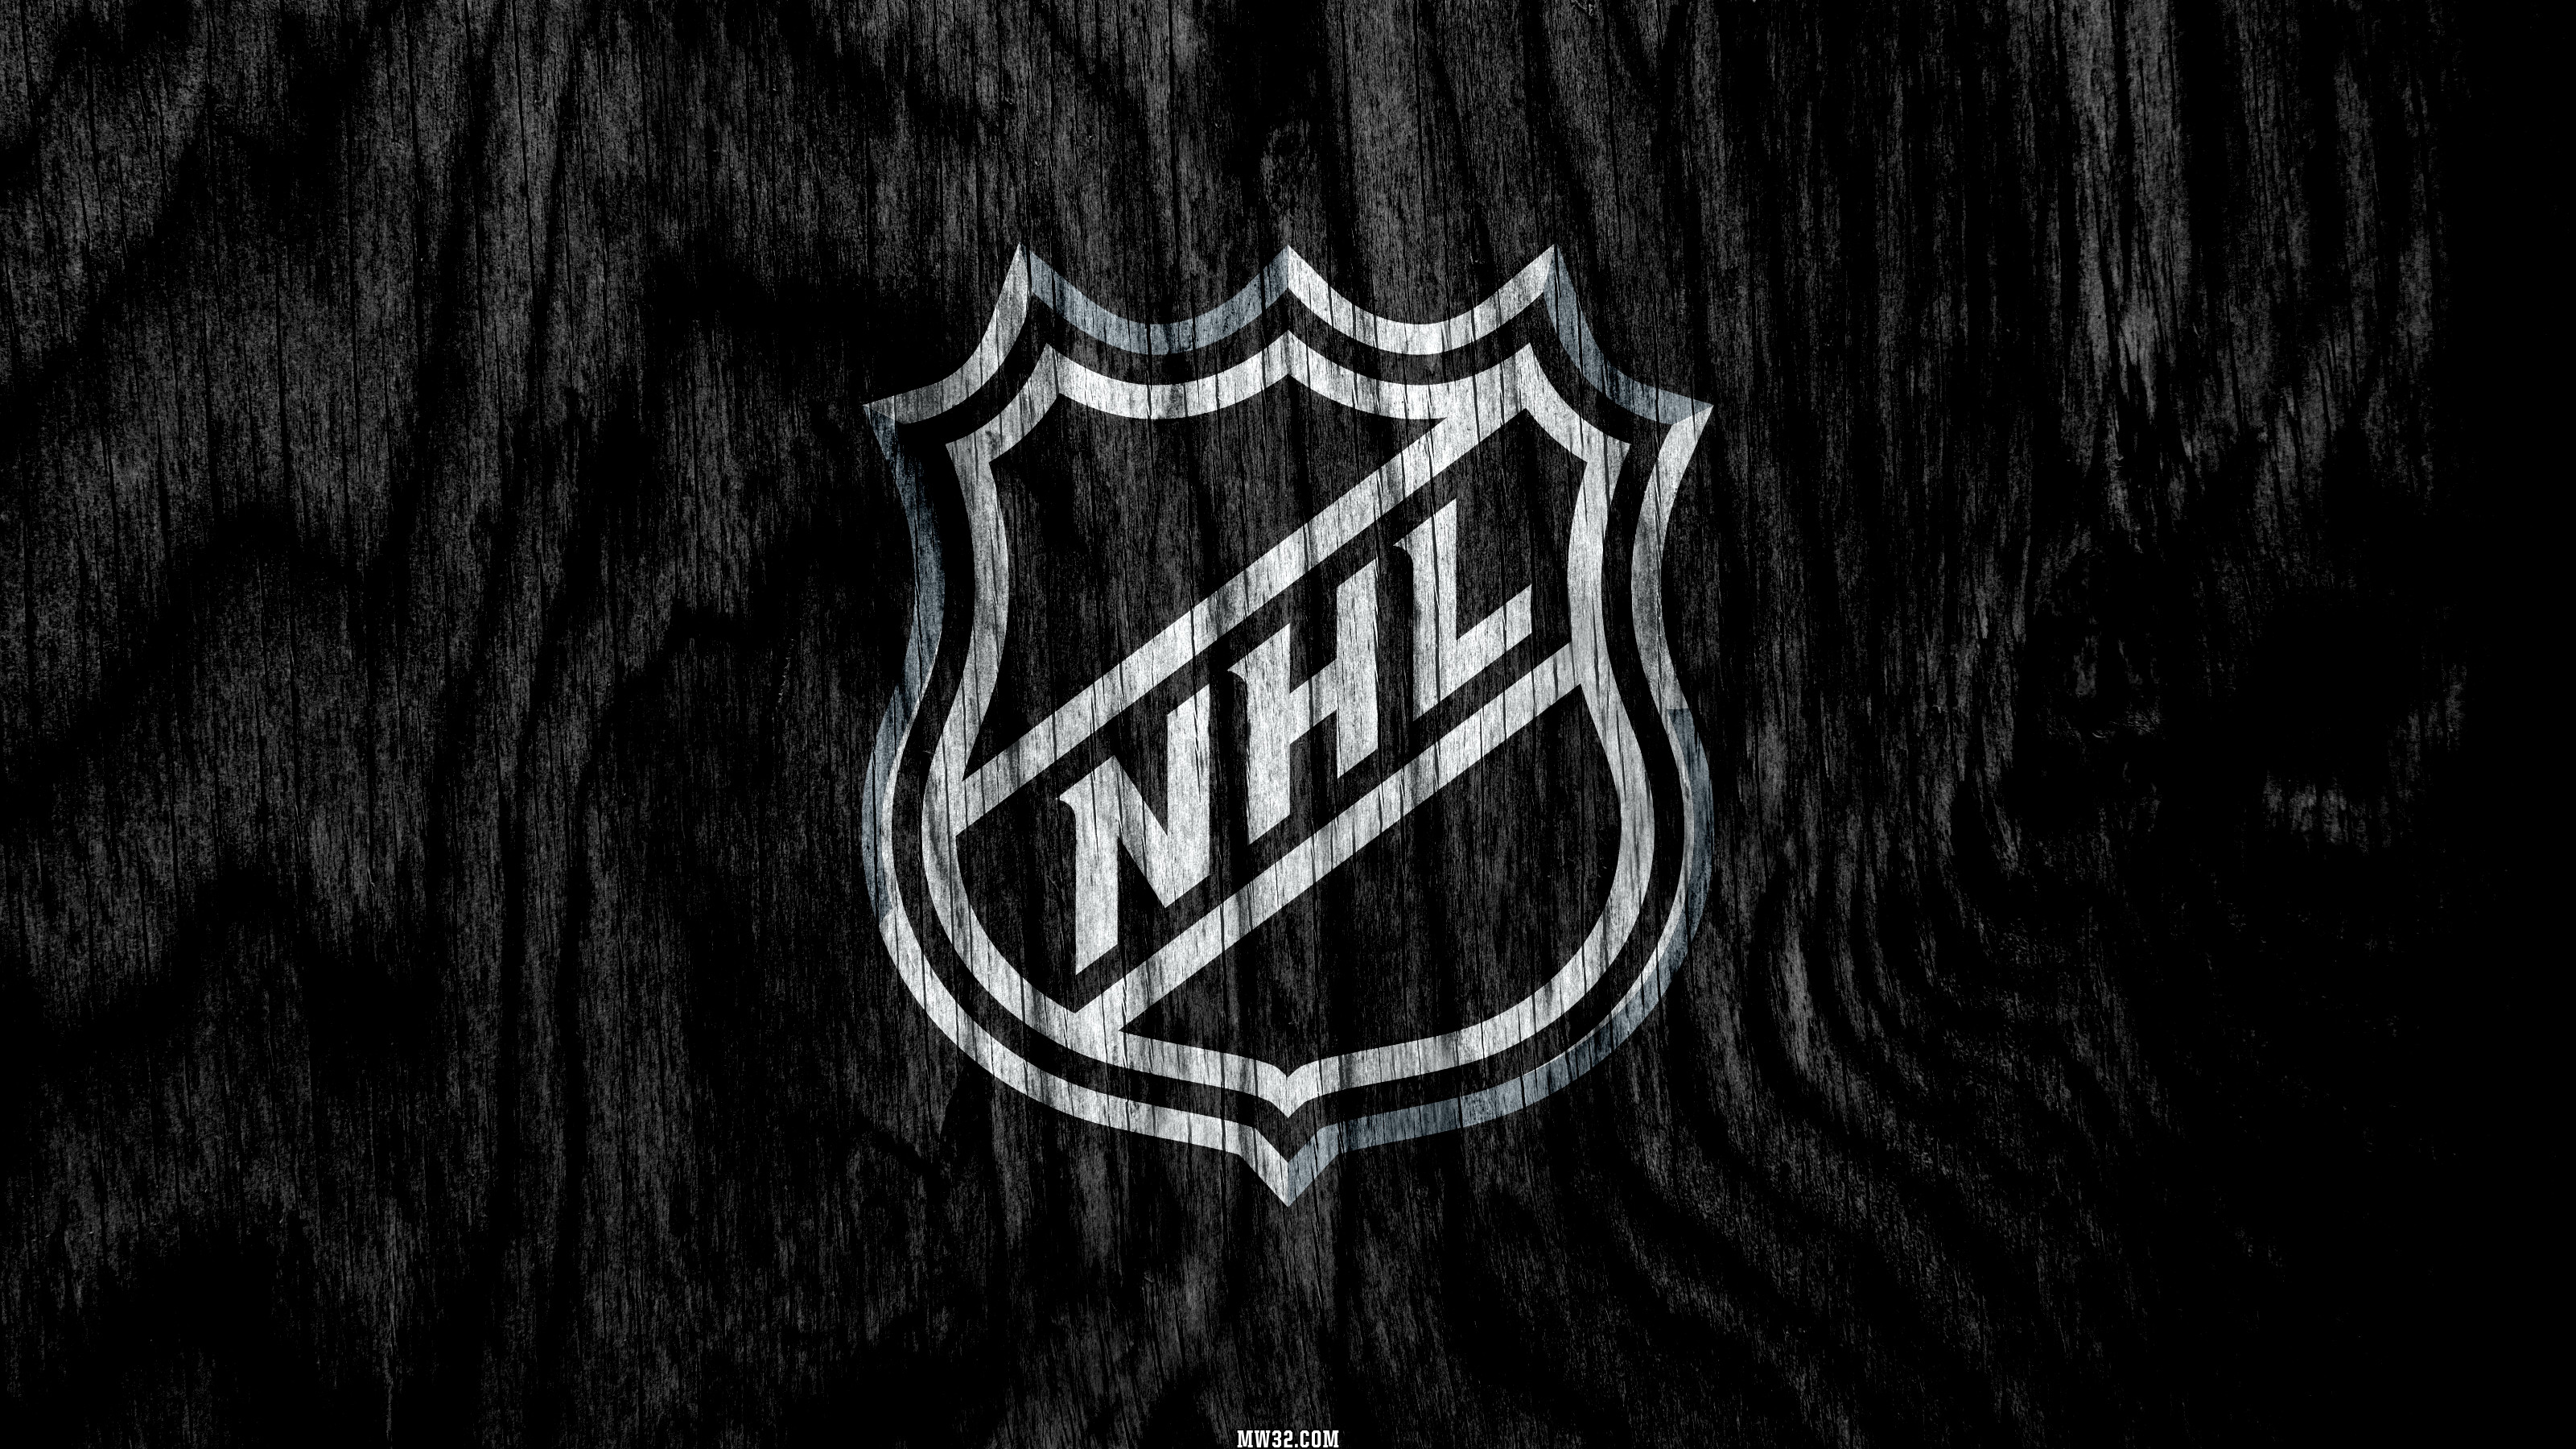 Nhl Logo Wallpaper Top 46 Nhl Logo Backgrounds ISQ932 3201x1800